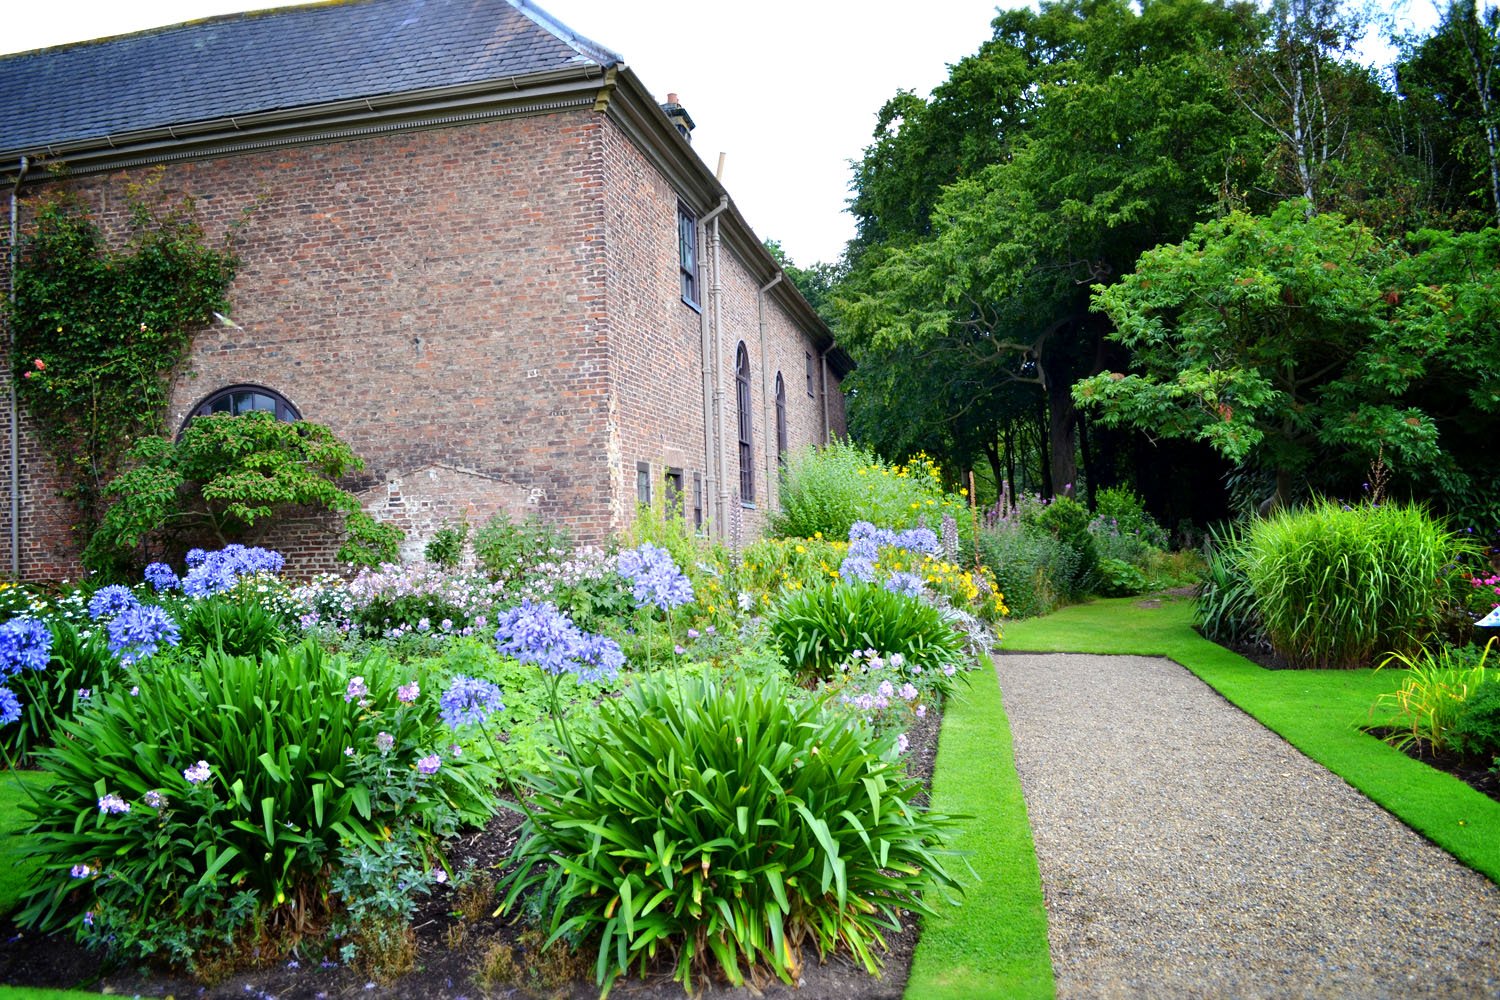 Gardens at Ormesby Hall